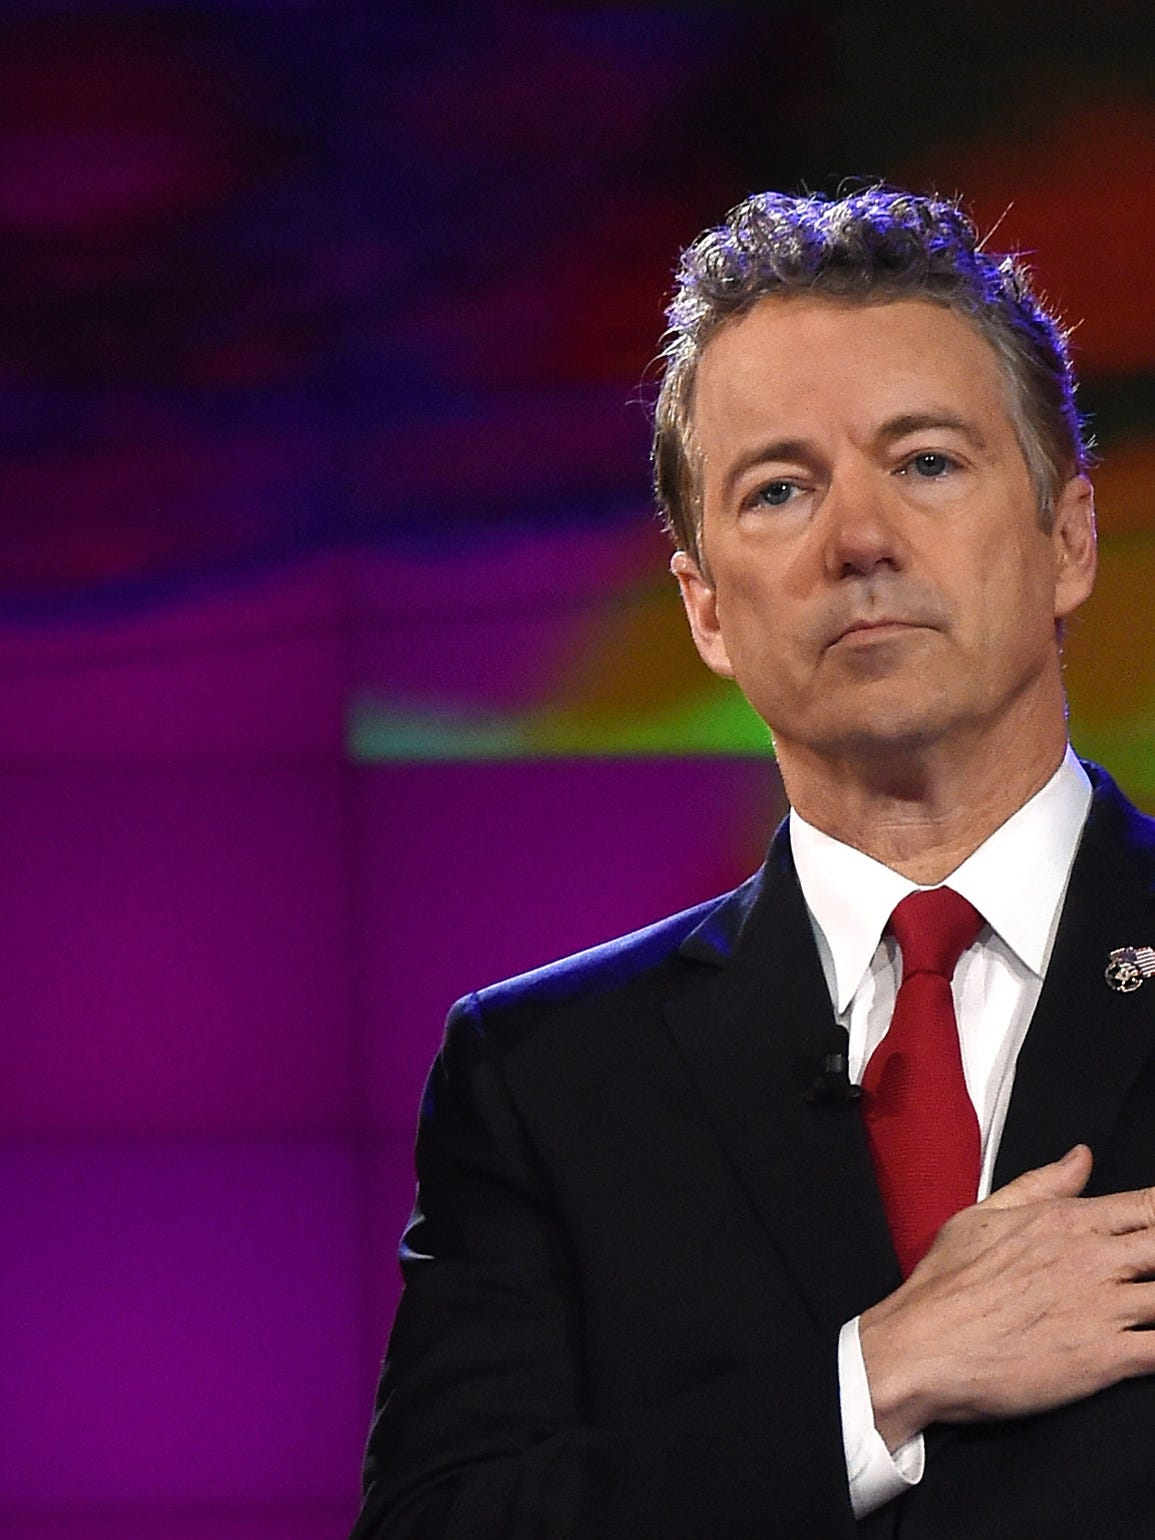 Presidential candidate Sen. Rand Paul, R-Ky., says